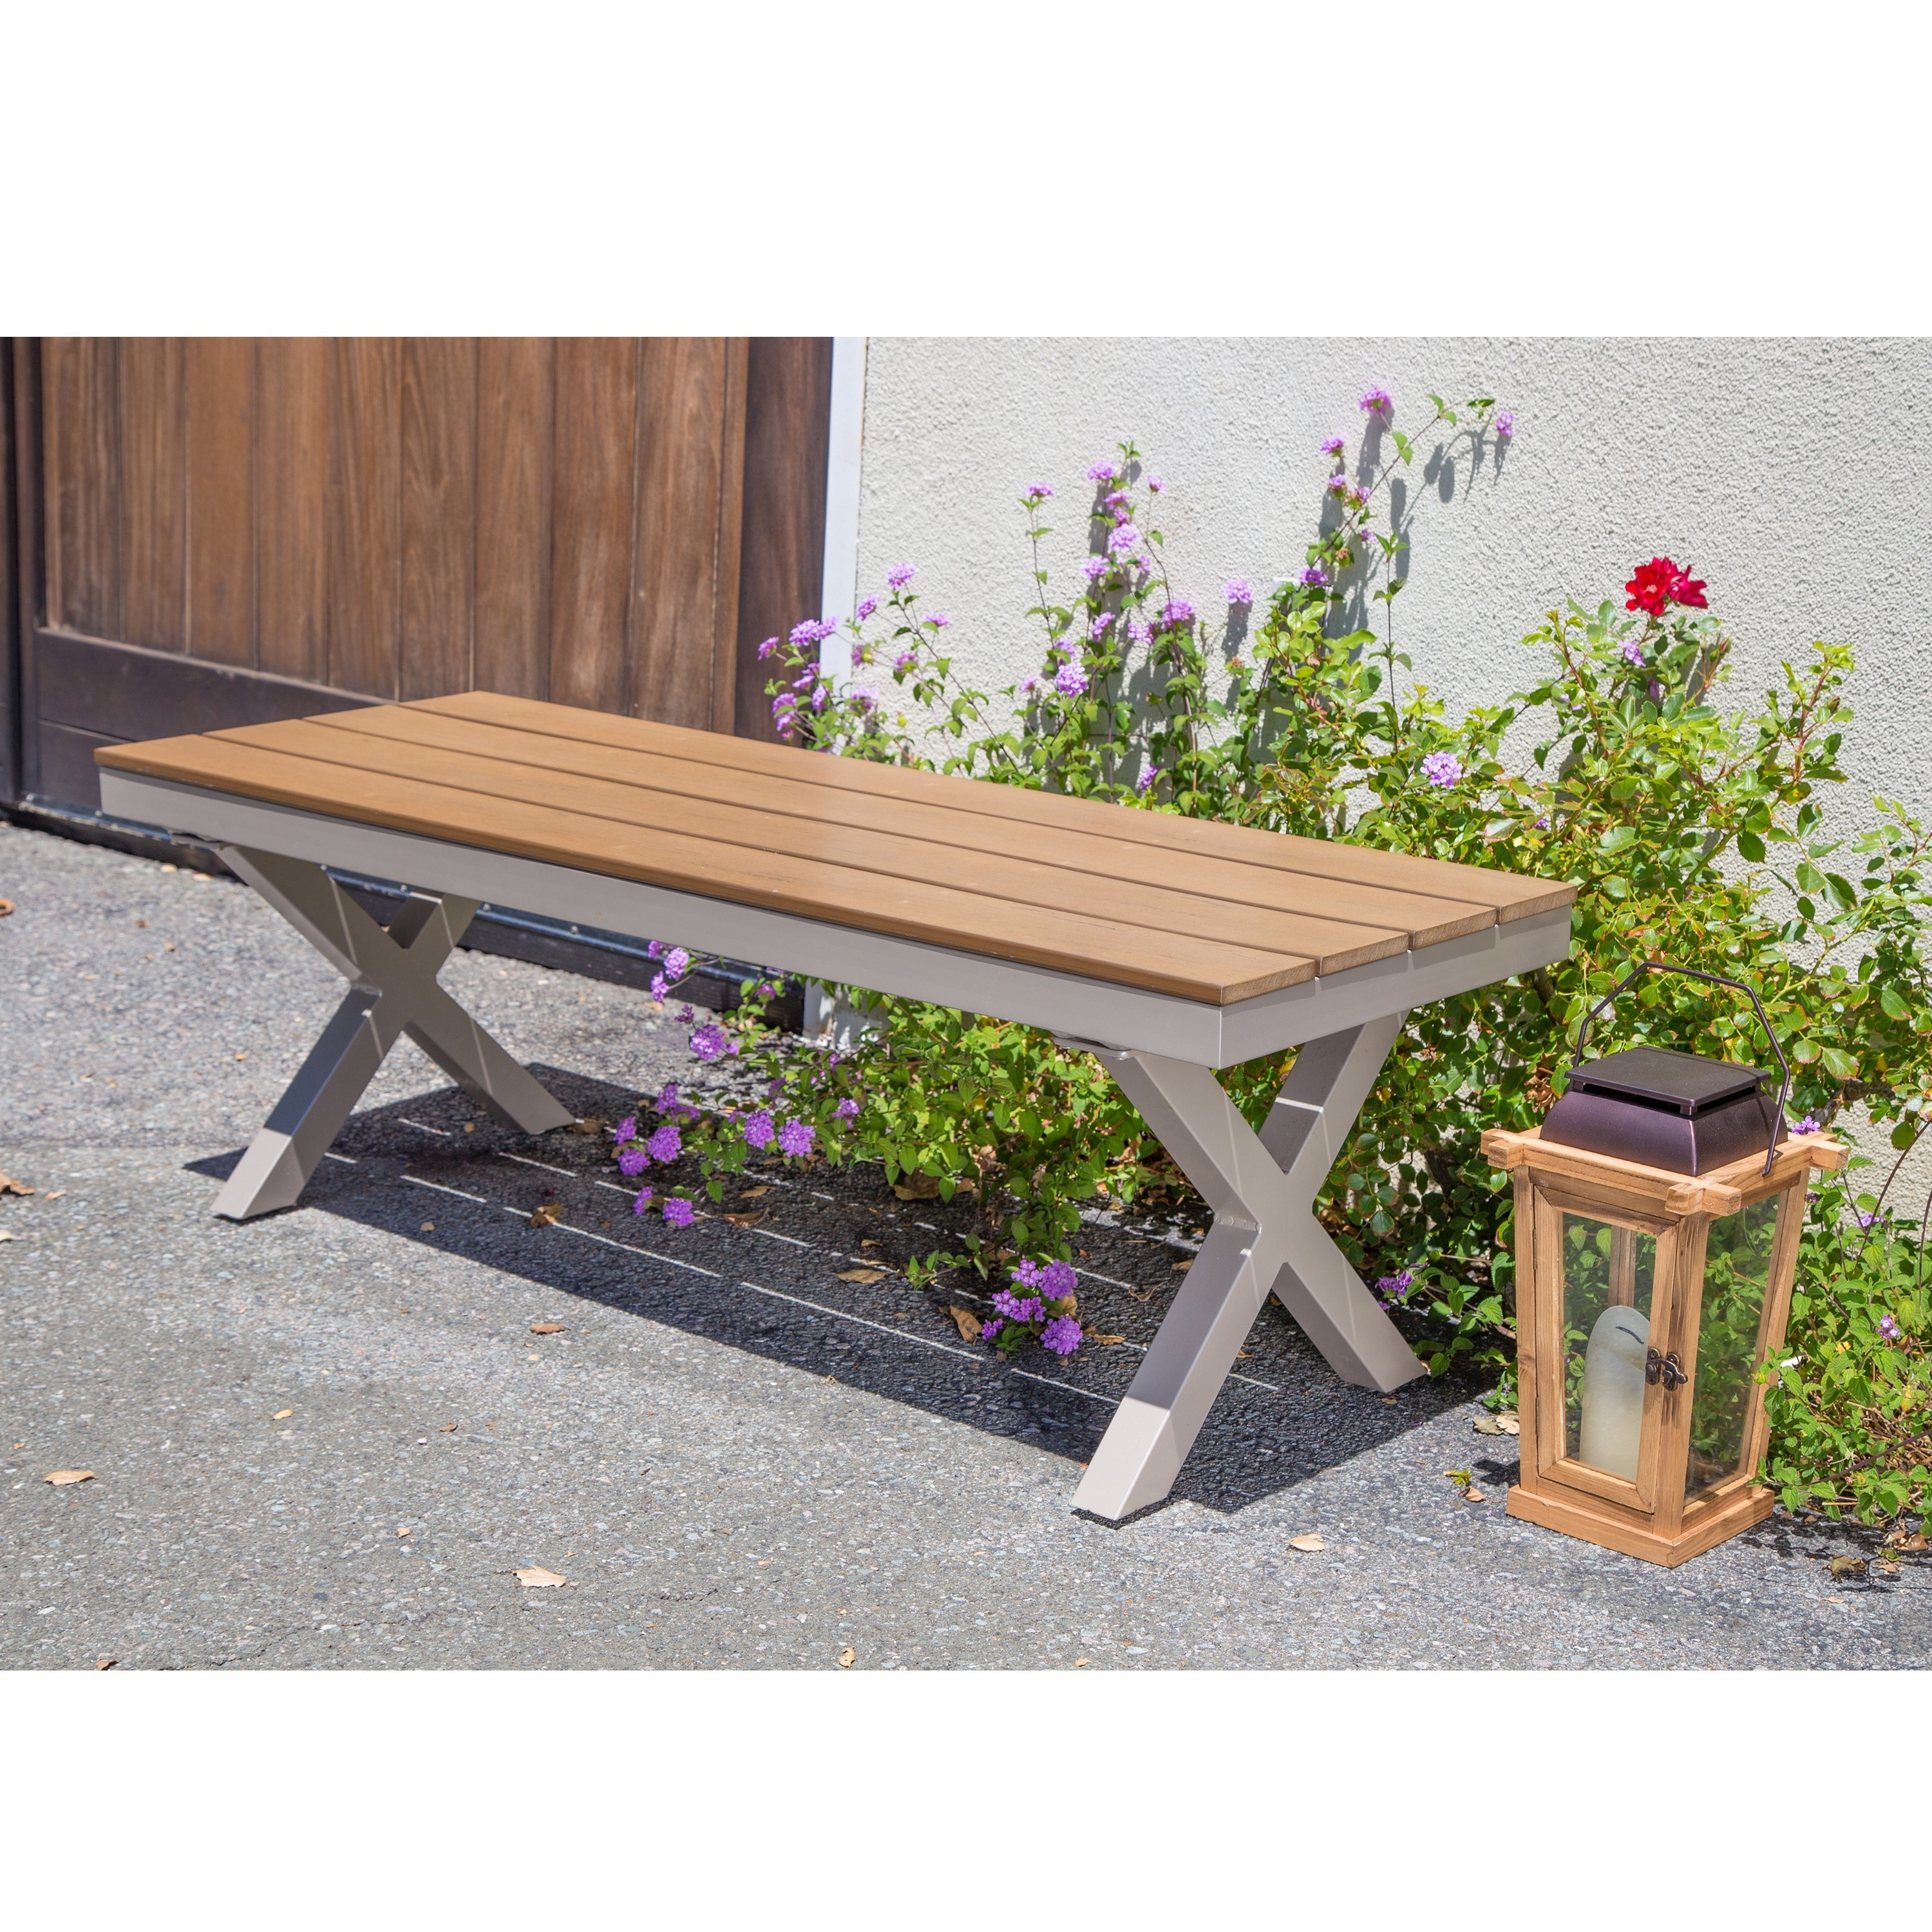 vineyard cfm recycled polywood garden product bench master hayneedle plastic